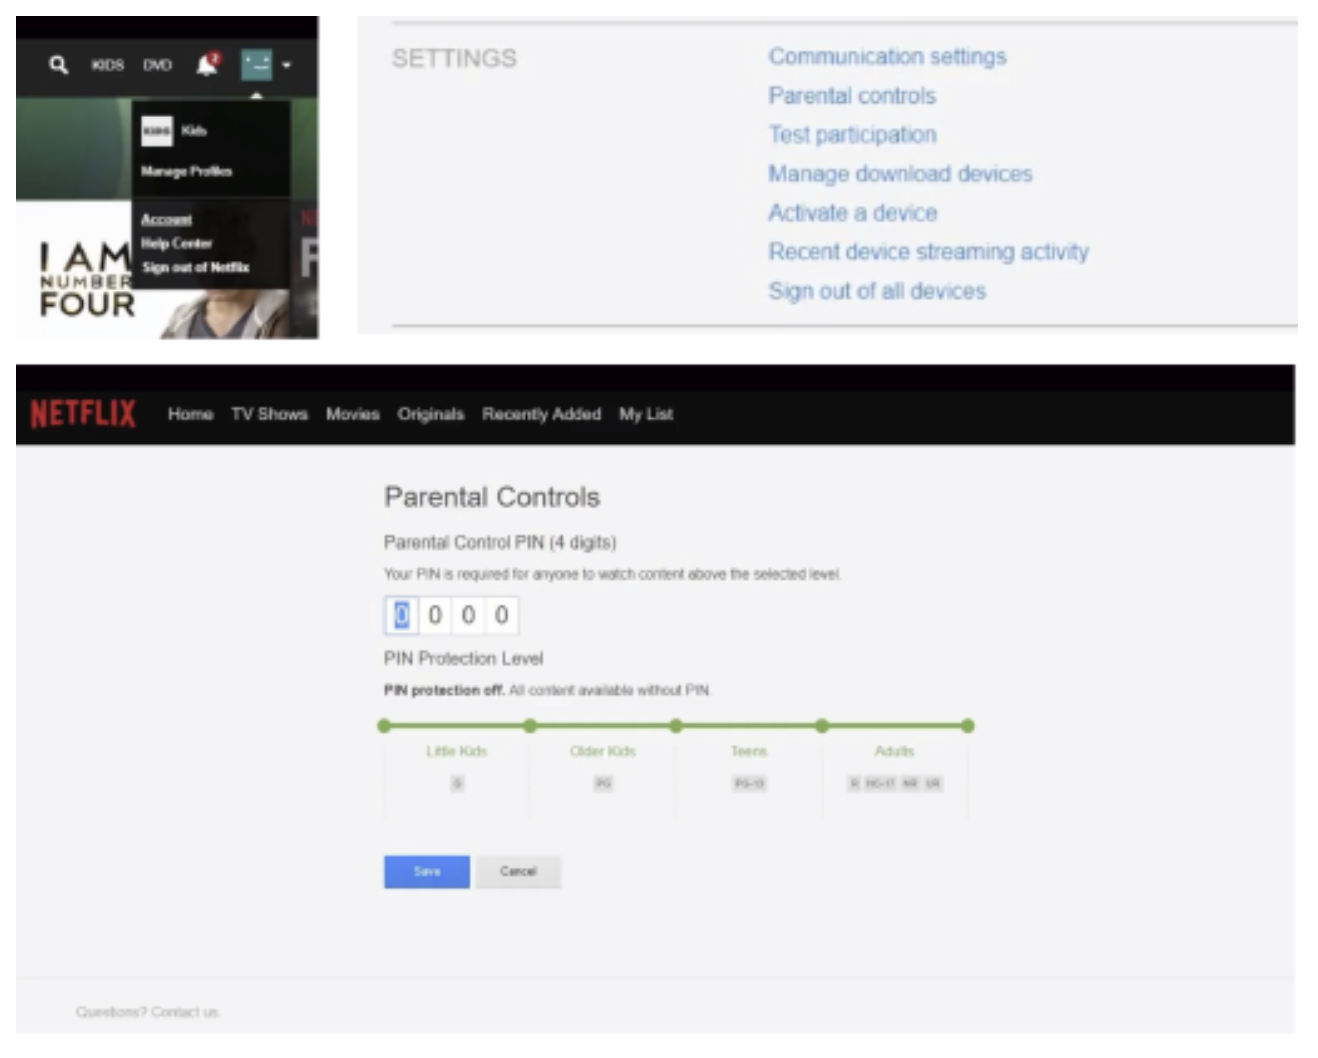 Enable Parental Controls in Netflix